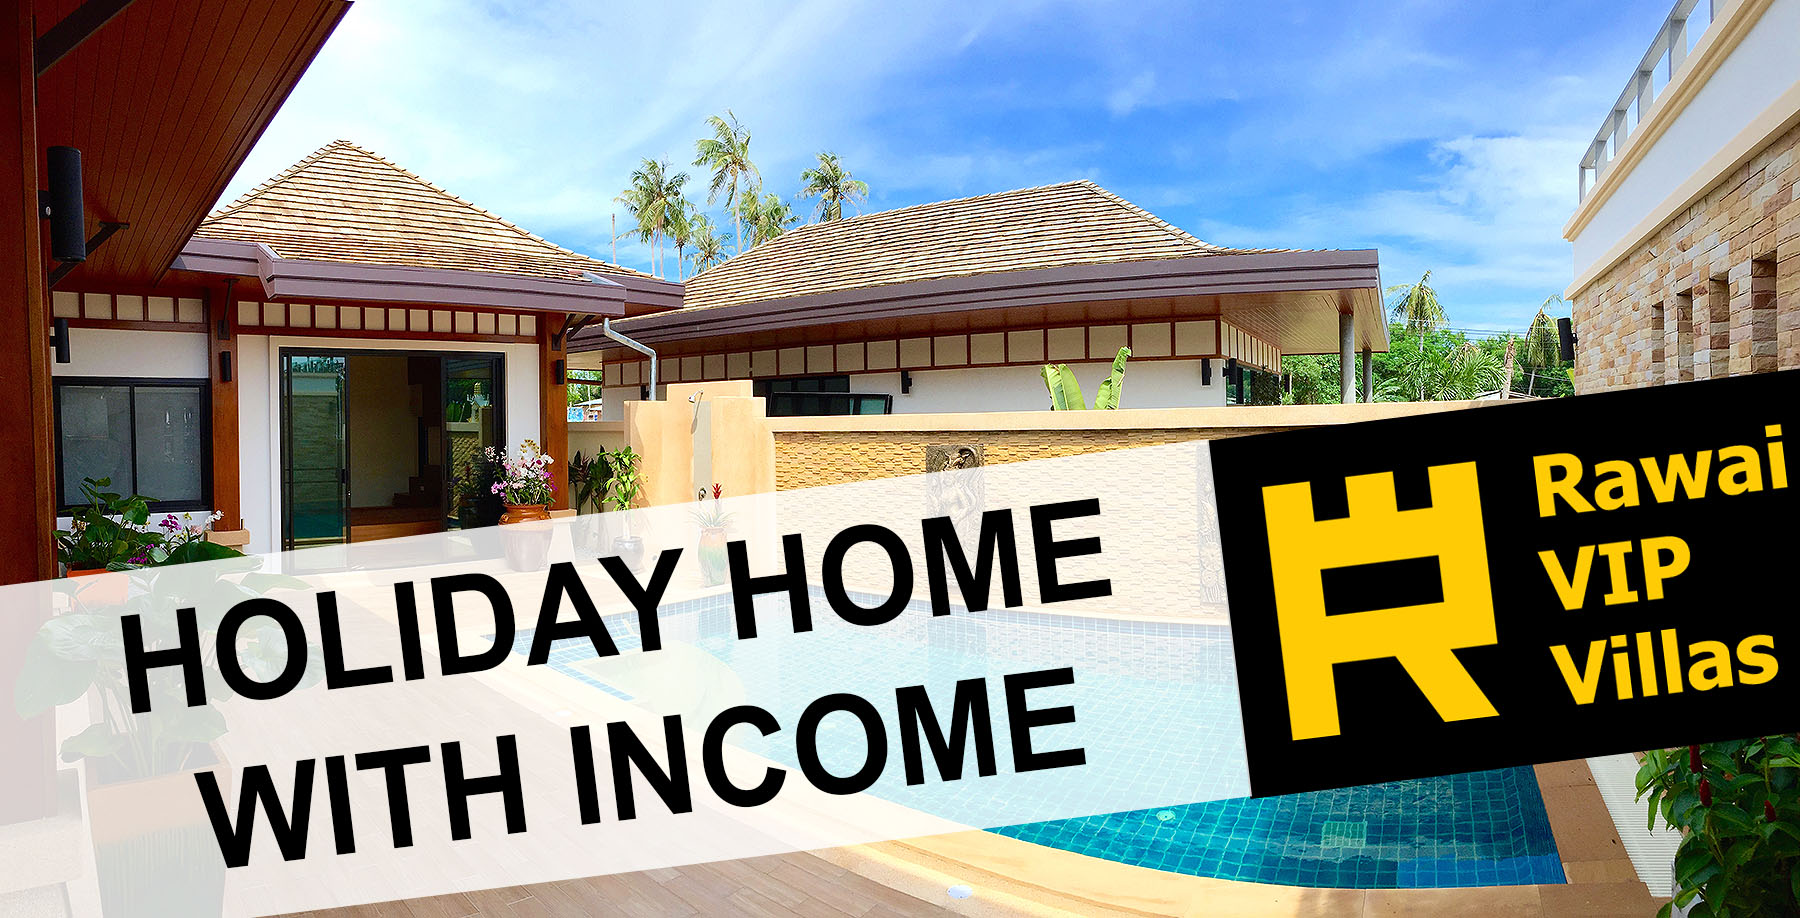 holday home with income